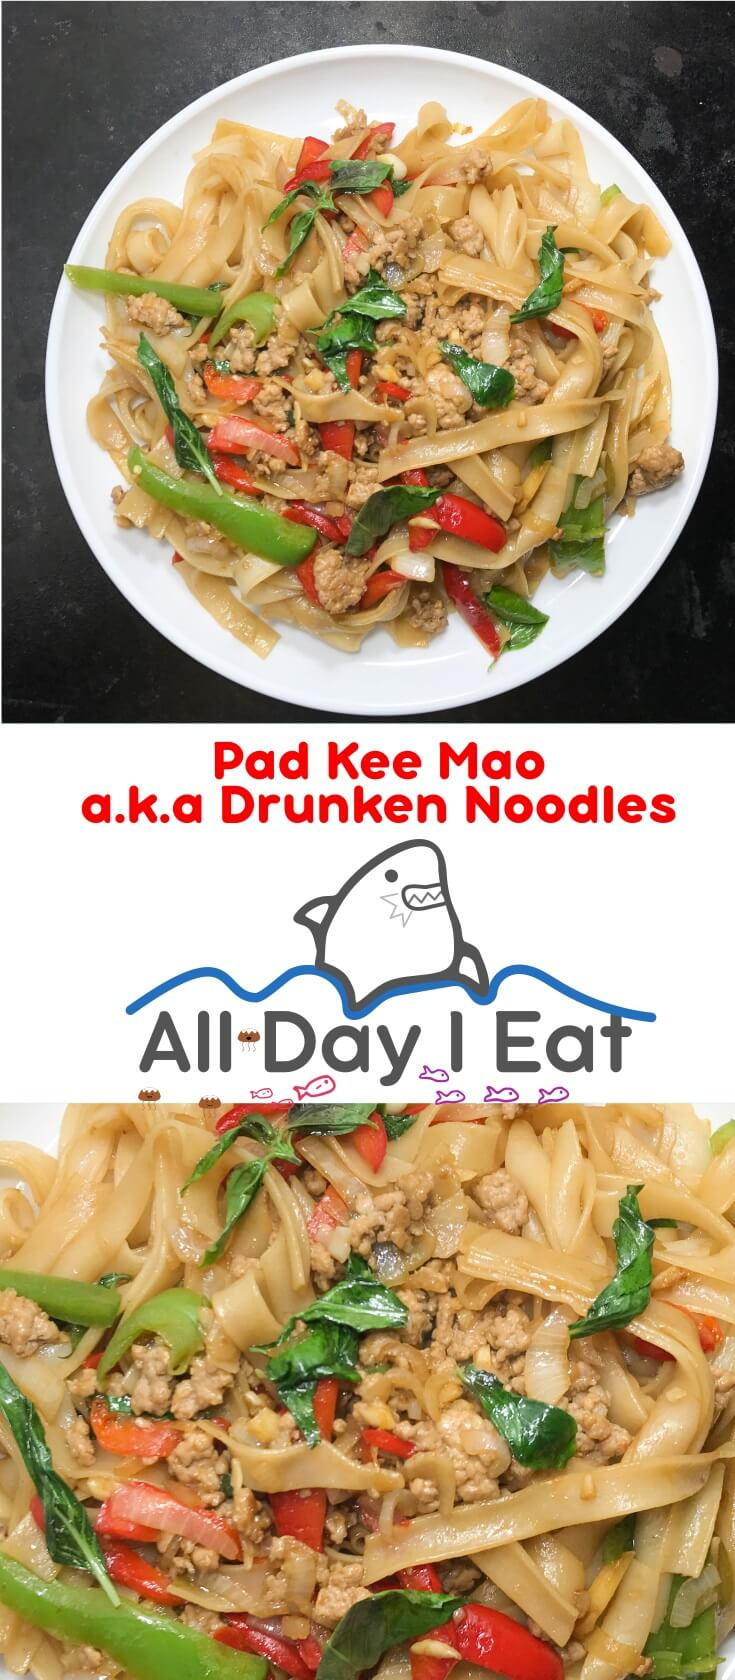 Pad Kee Mao a.k.a drunken noodles! One of the tastiest and most comforting Thai Stir Frys you can make, and it's super easy!!   www.alldayieat.com